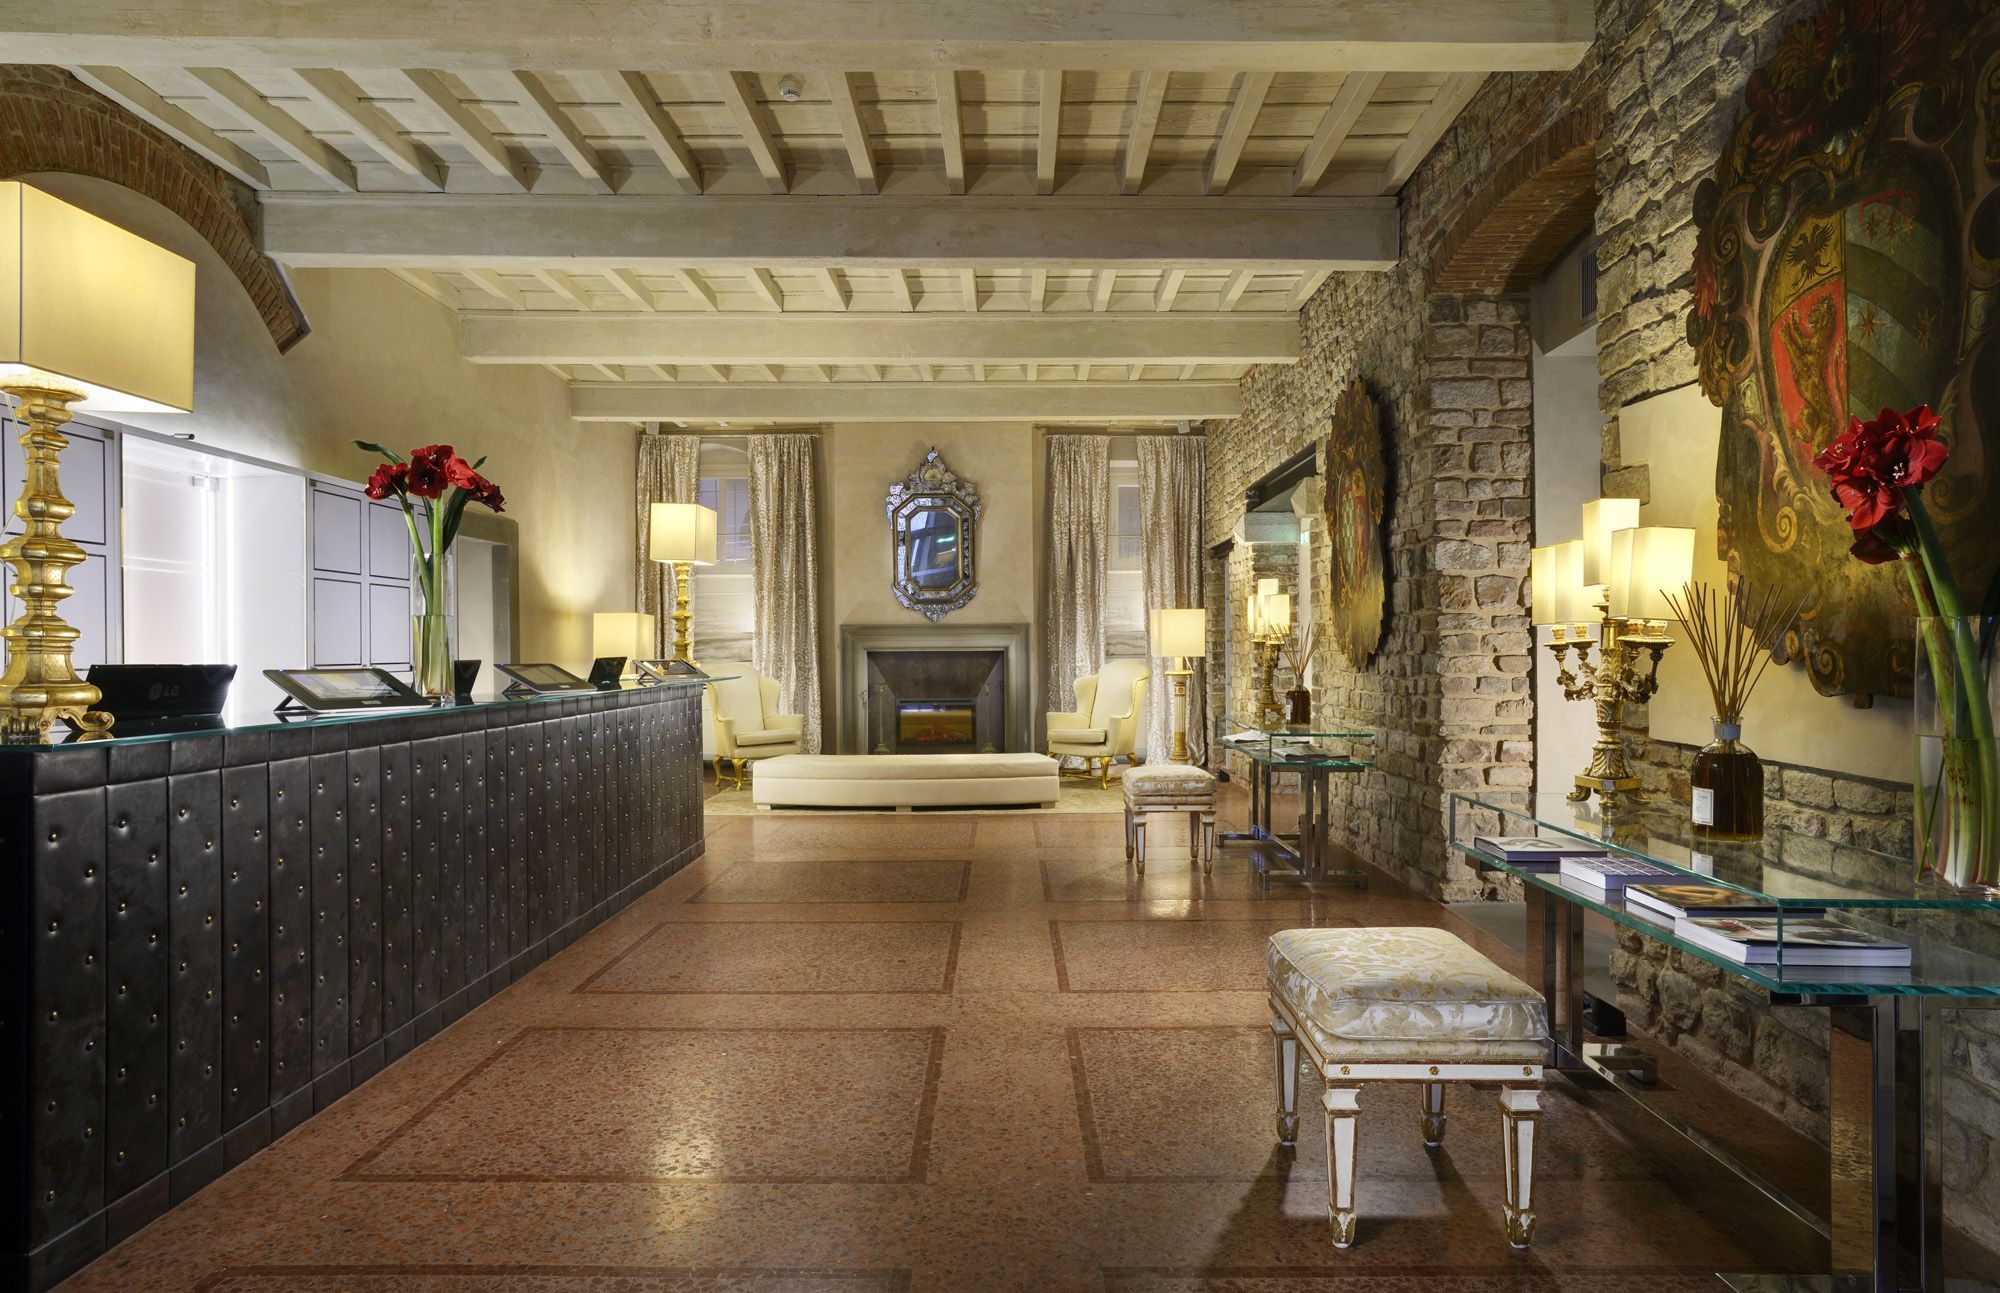 Hotel 4 stelle a firenze centro boutique hotel for Boutique hotel 4 stelle roma